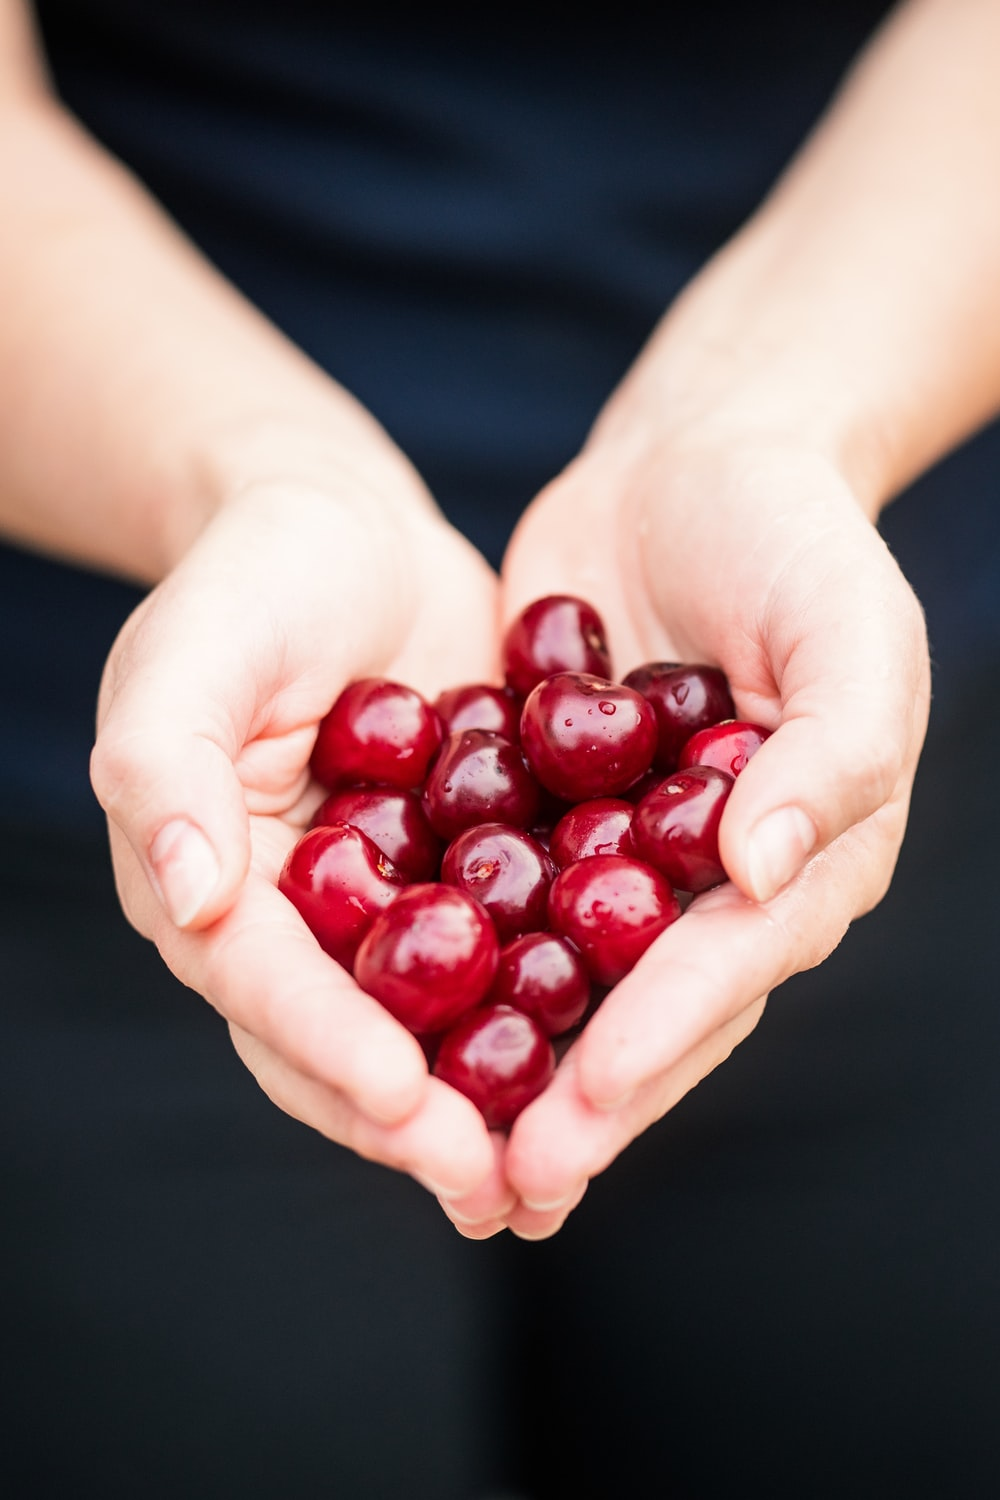 person holding red cherries